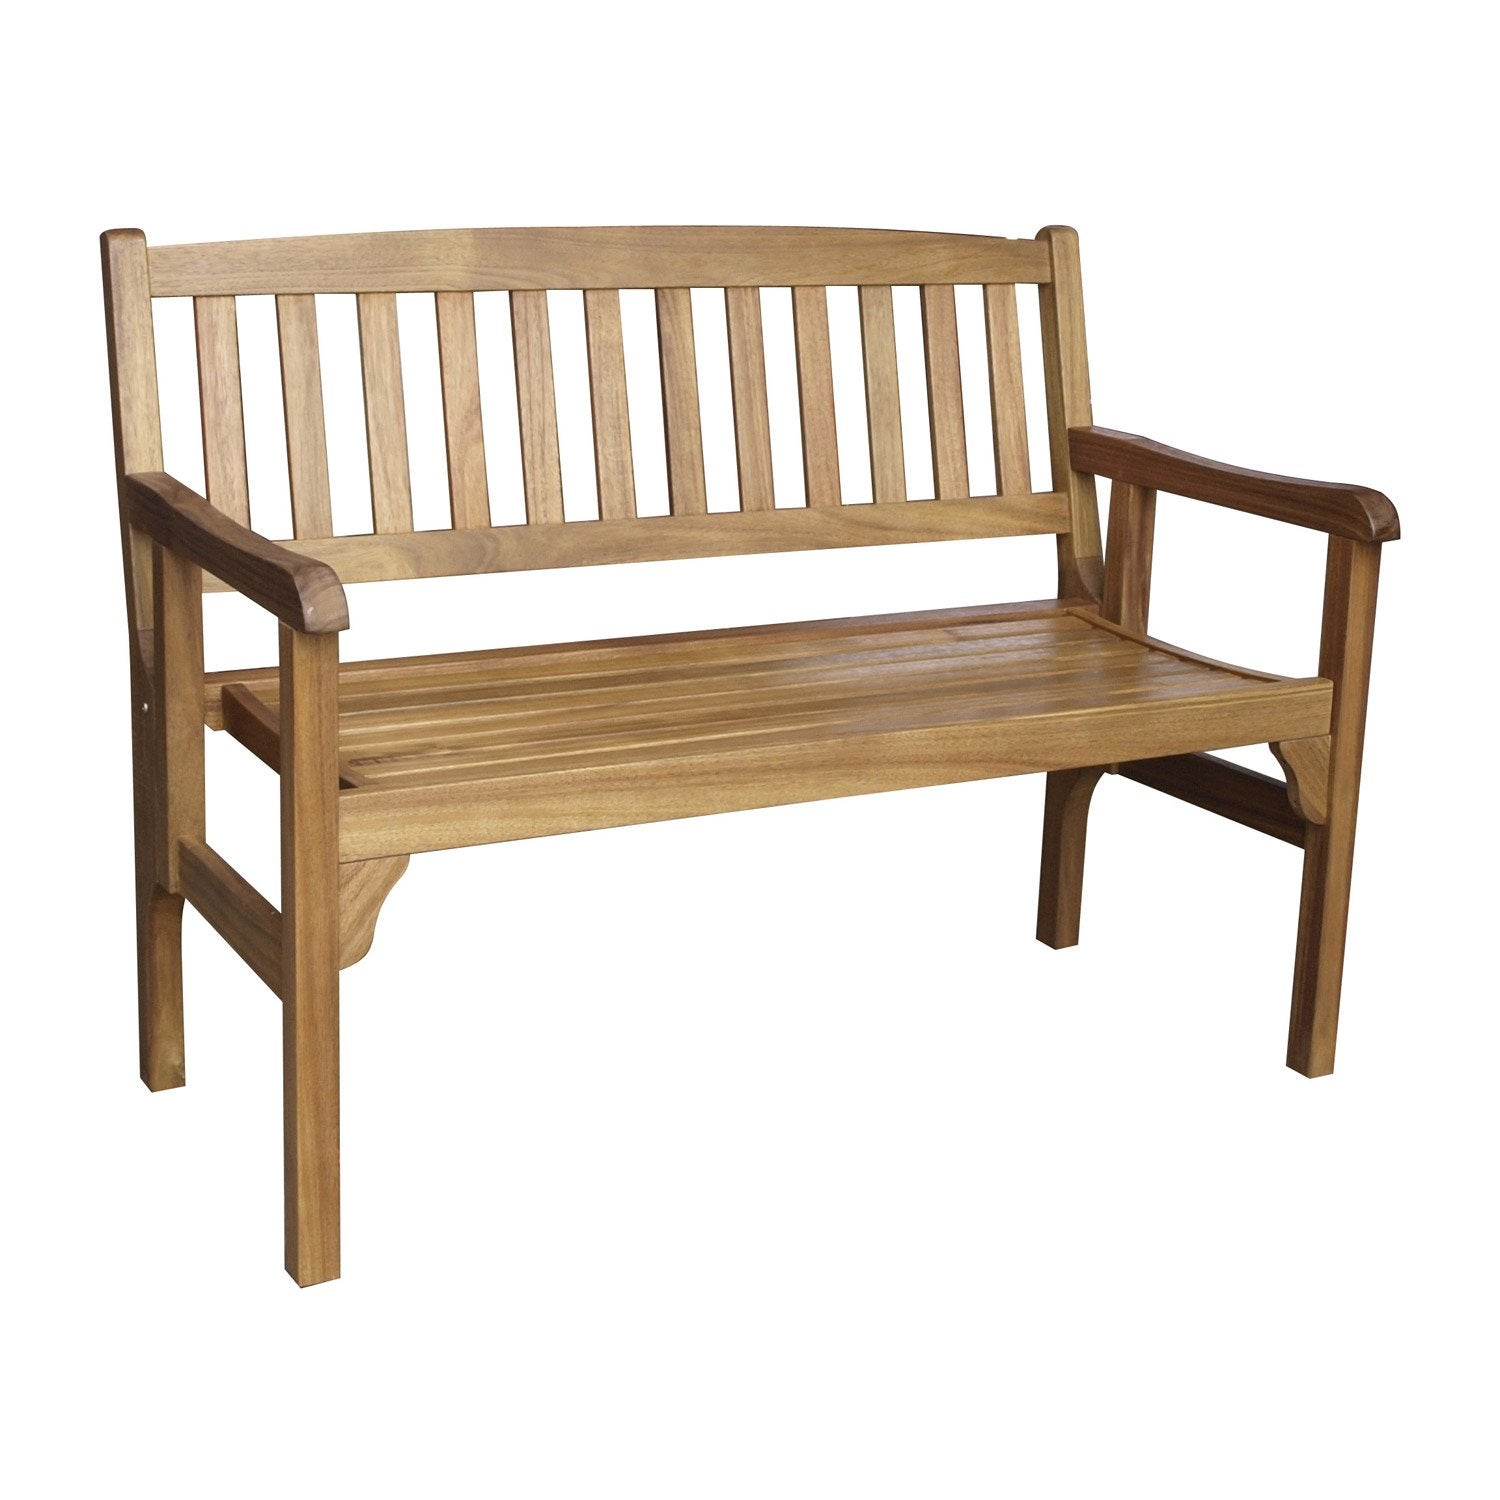 Banc 2 places de jardin leroy merlin for Meuble jardin leroy merlin